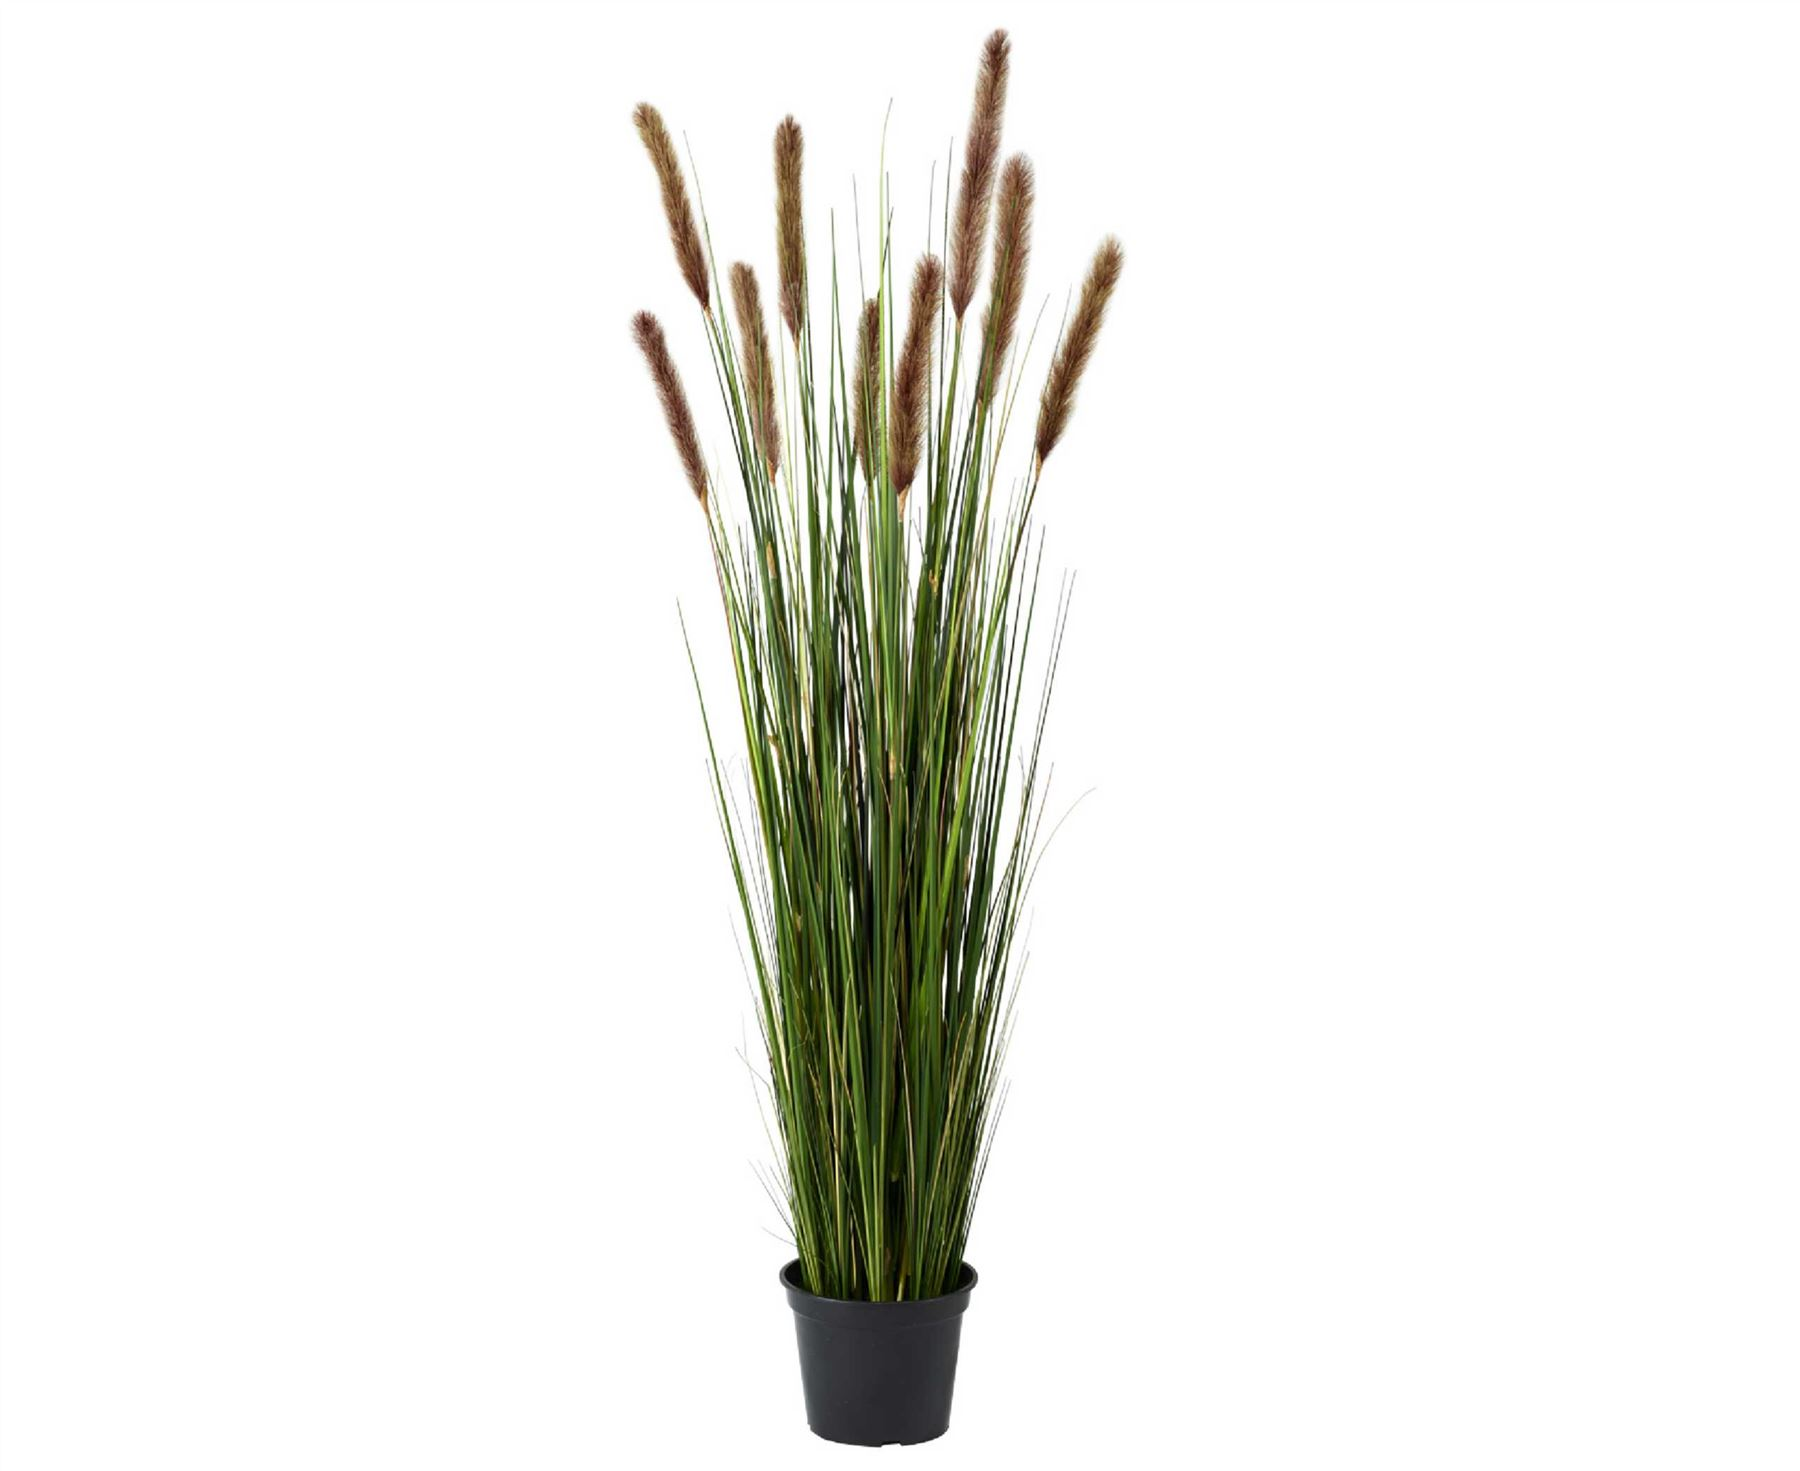 Bloom 4ft potted grass tall 120cm artificial plant home for Tall ornamental grasses